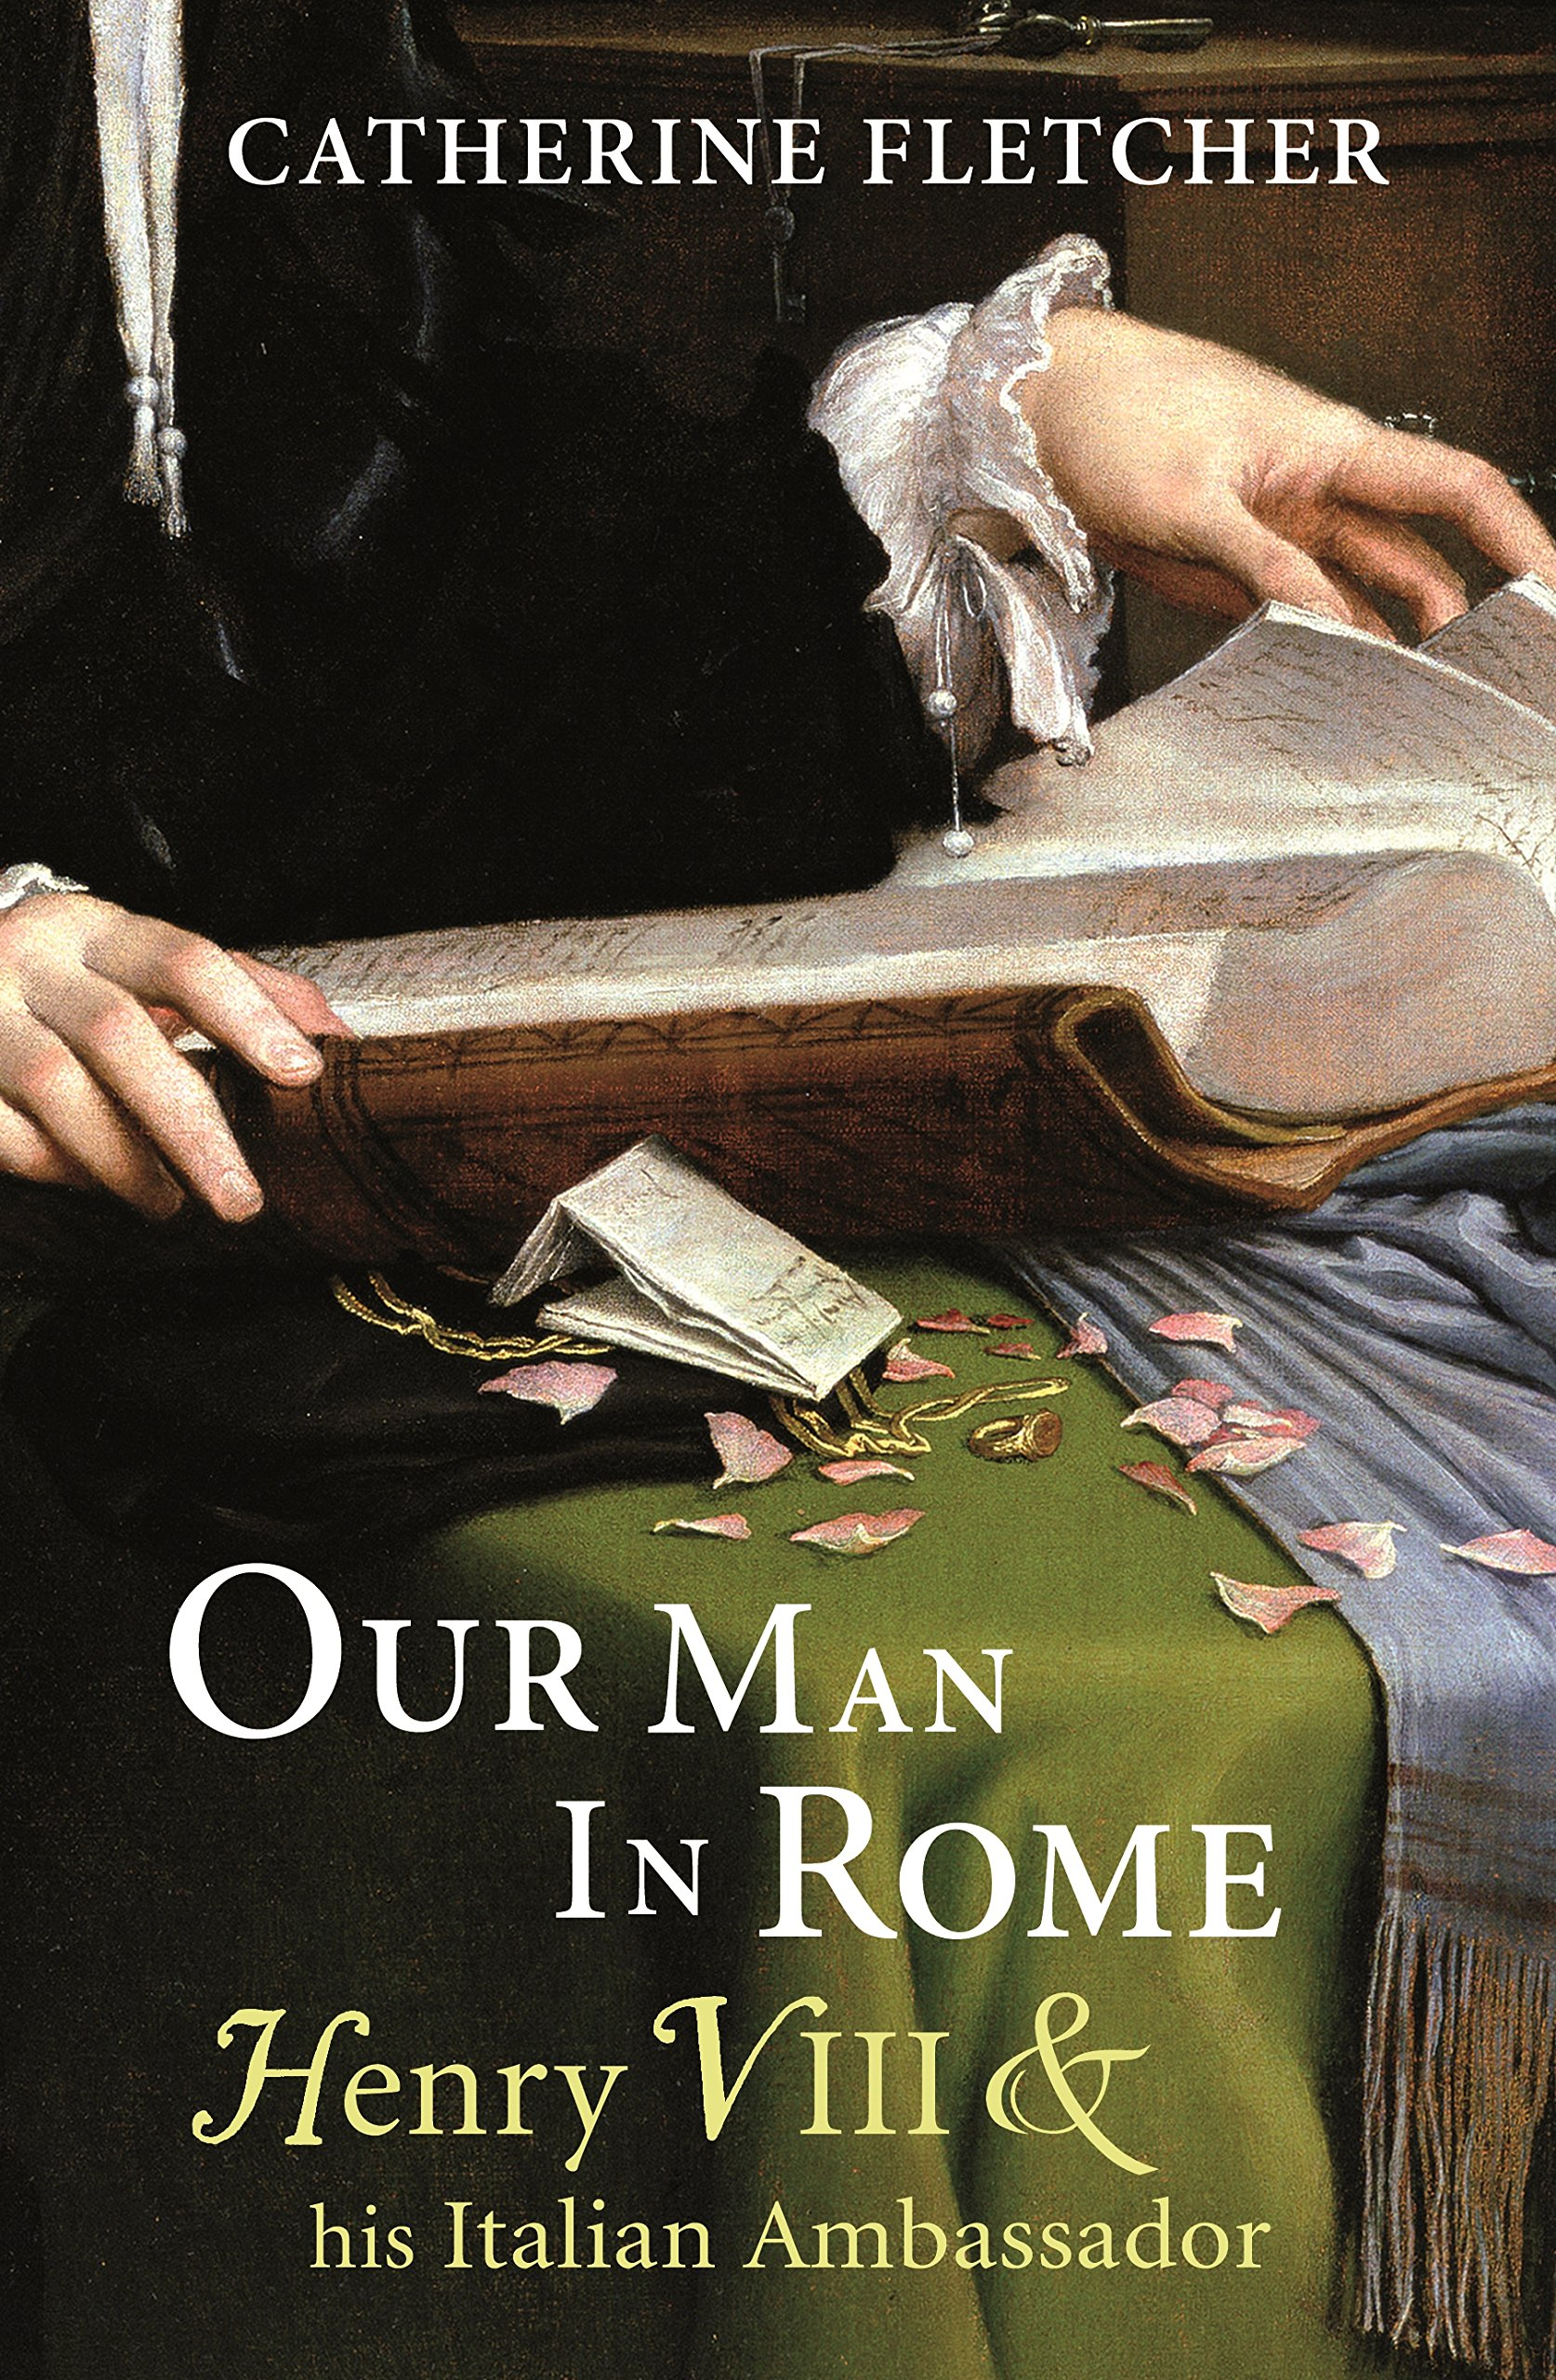 Our Man in Rome: Henry VIII and his Italian Ambassador PDF